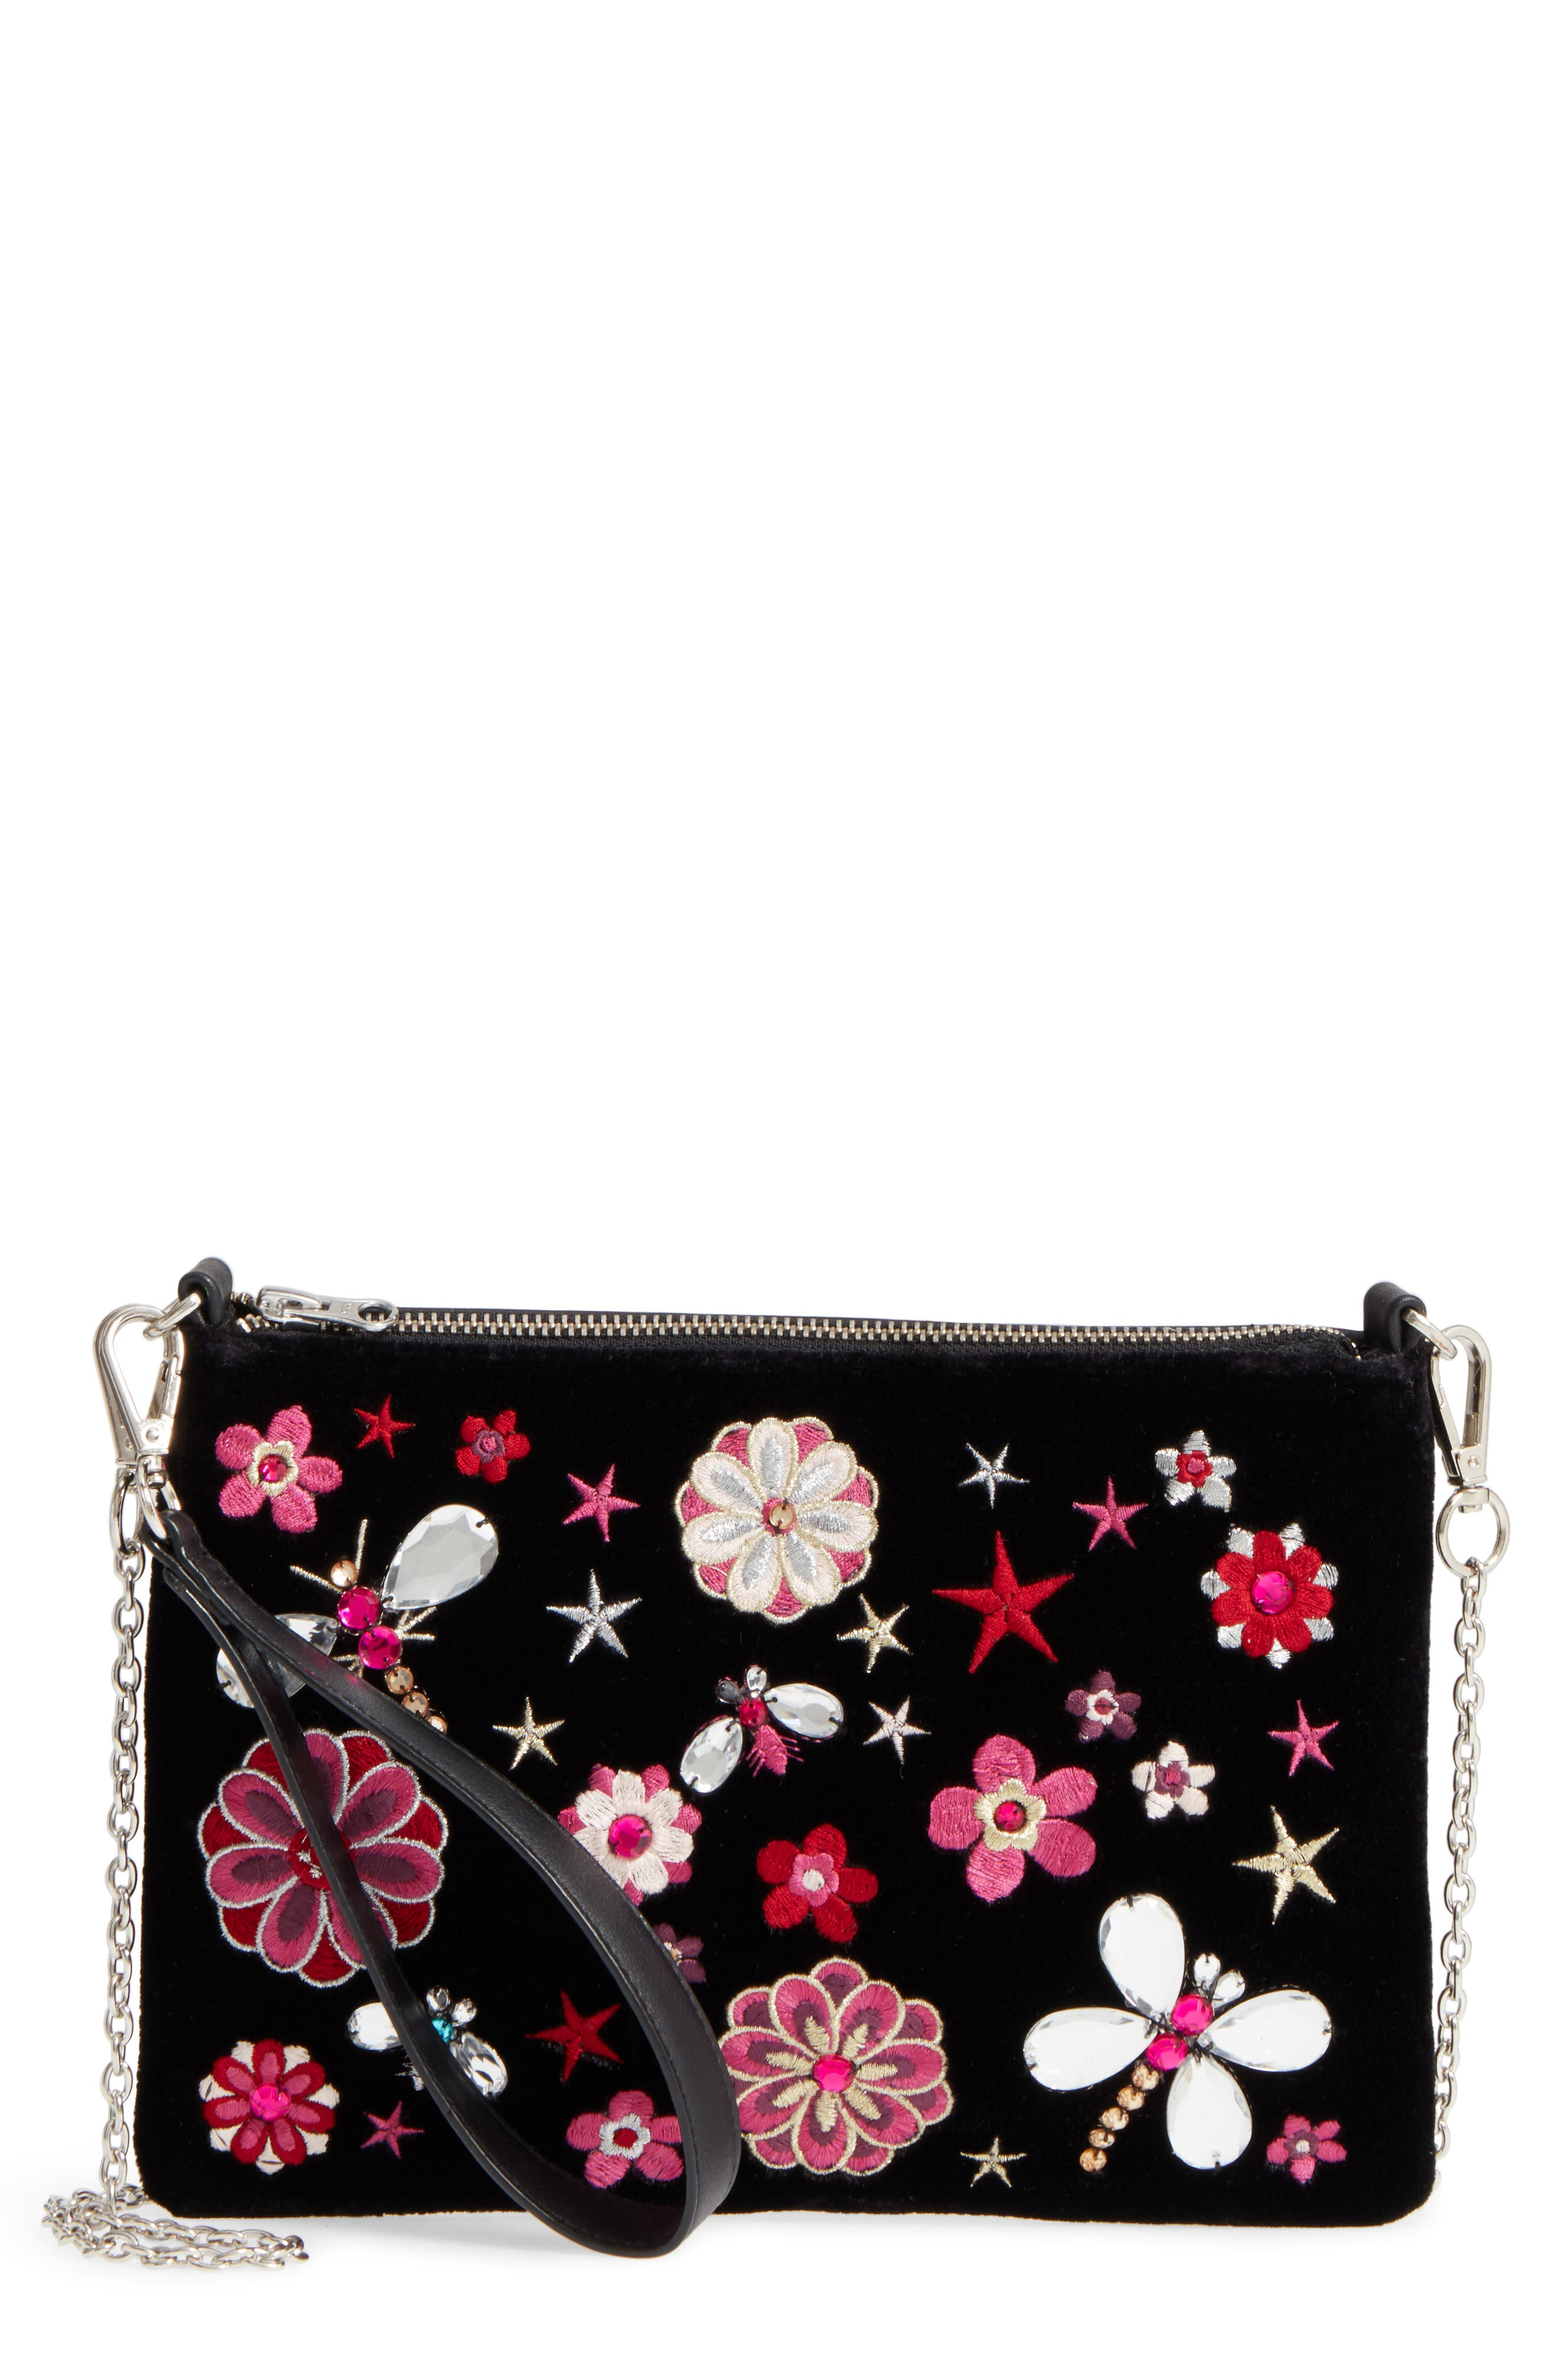 Main Image - Chelsea28 Embellished Faux Leather Clutch